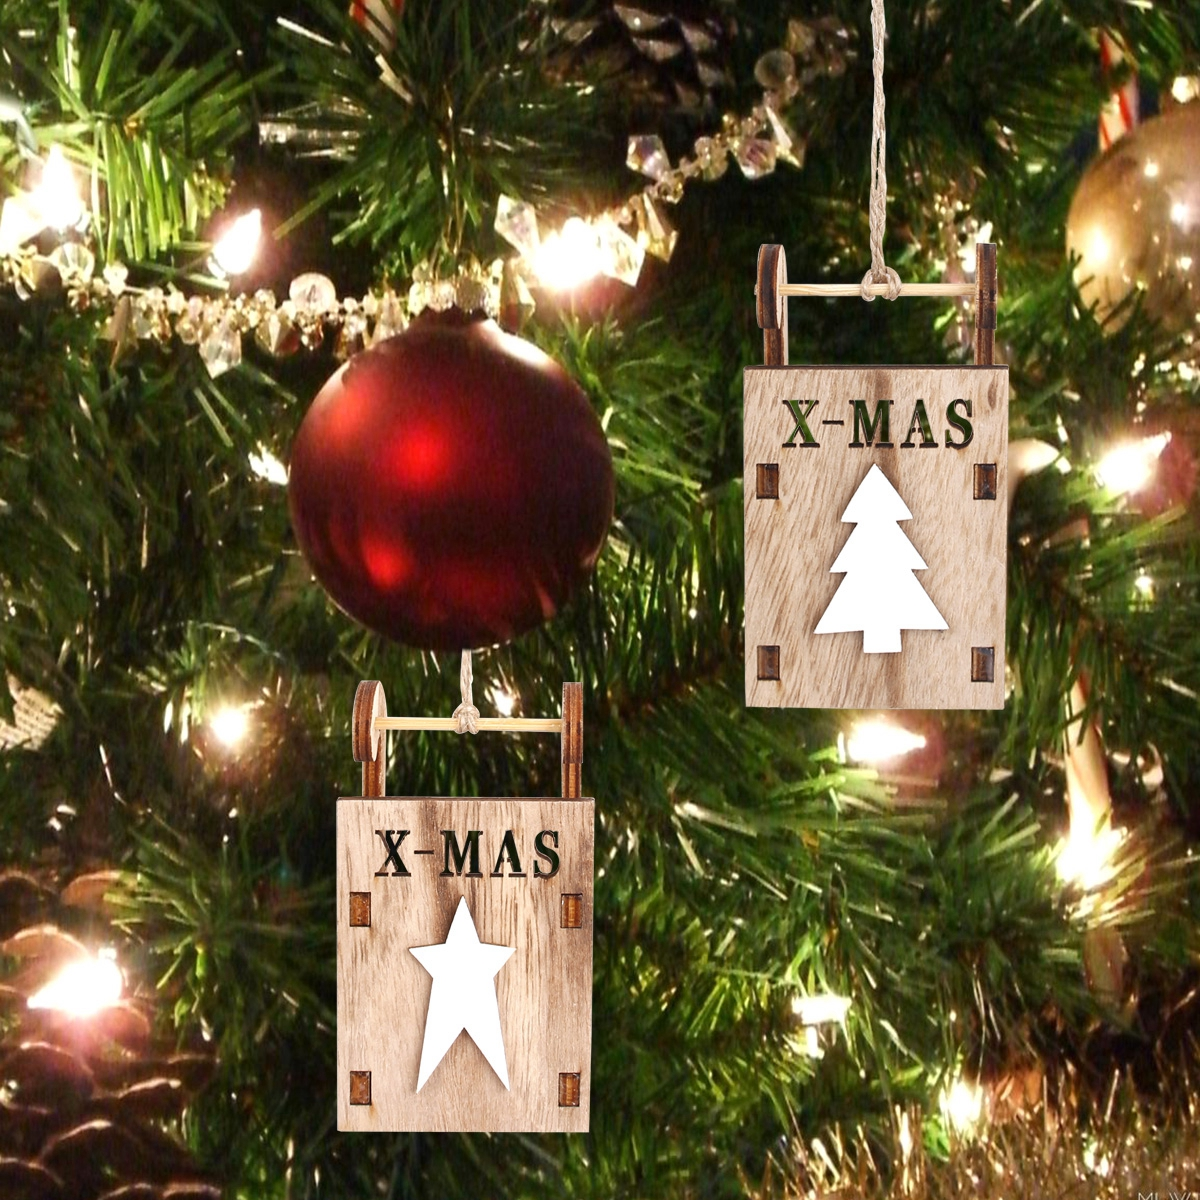 xmas tree supply sled wooden hanging ornaments merry christmas decorations home - Merry Christmas Decorations